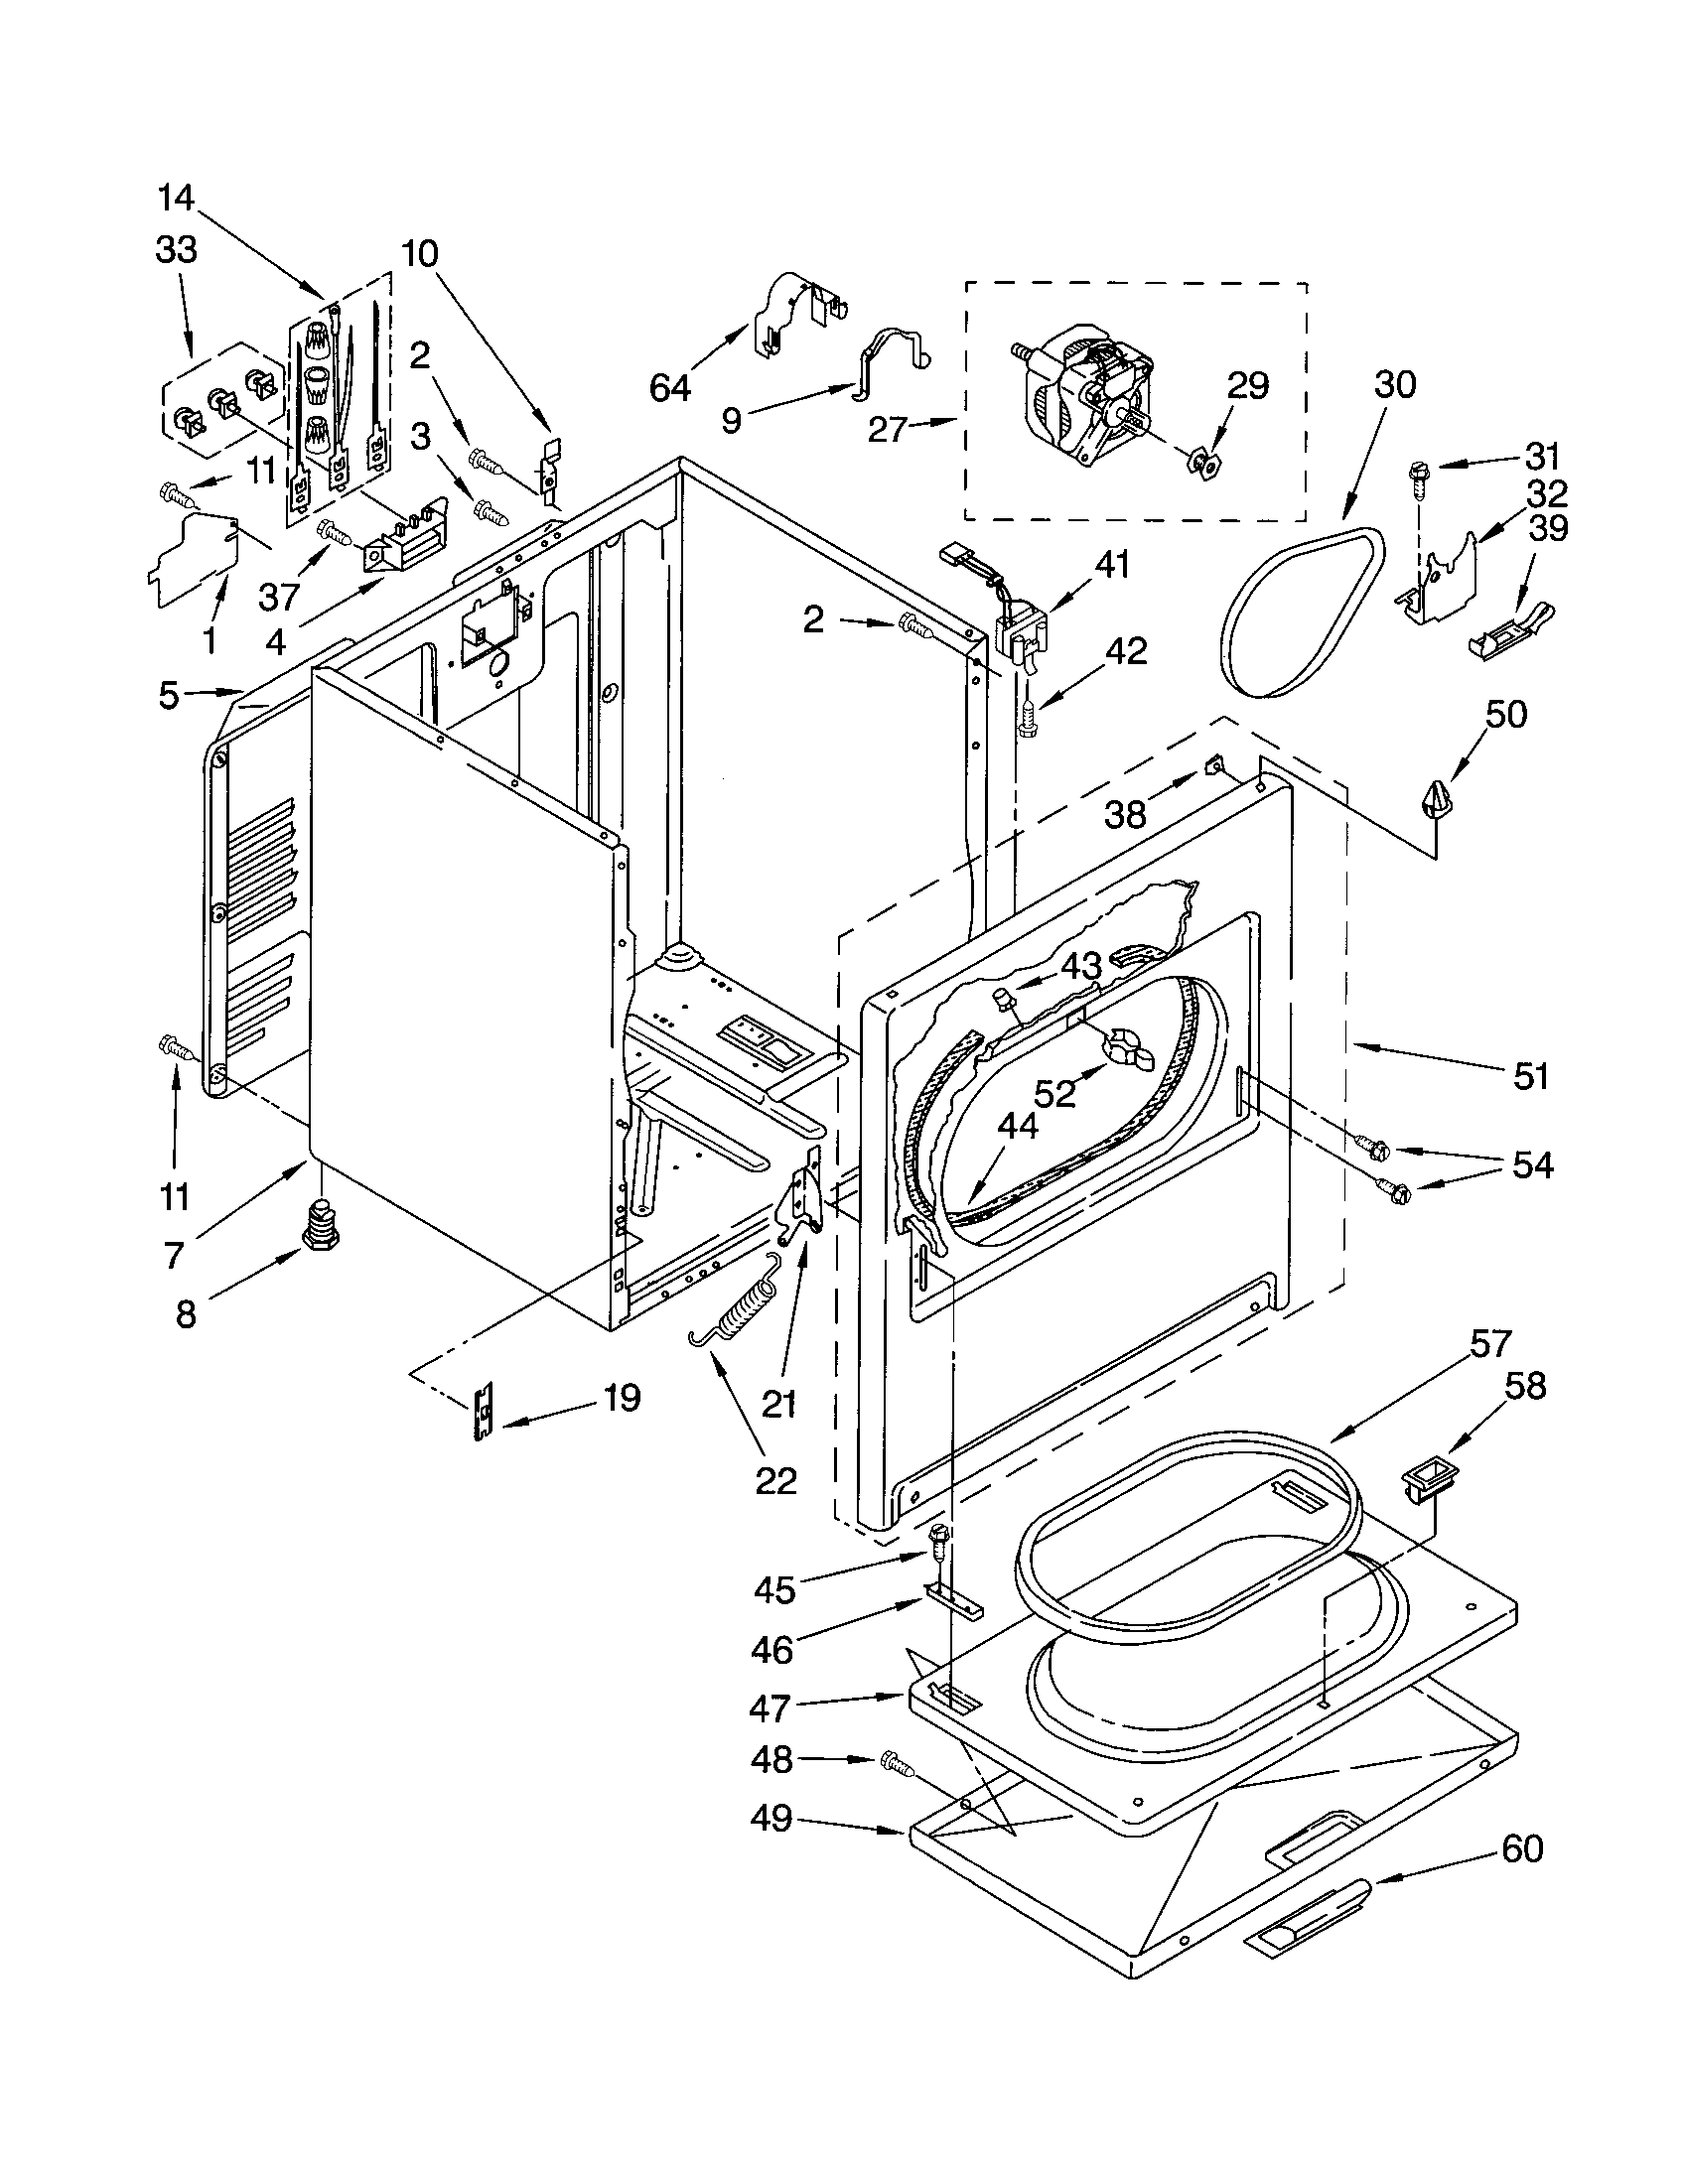 Kenmore Dryer Wiring Harness The Portal And Forum Of Diagram Washing Machine Images Gallery